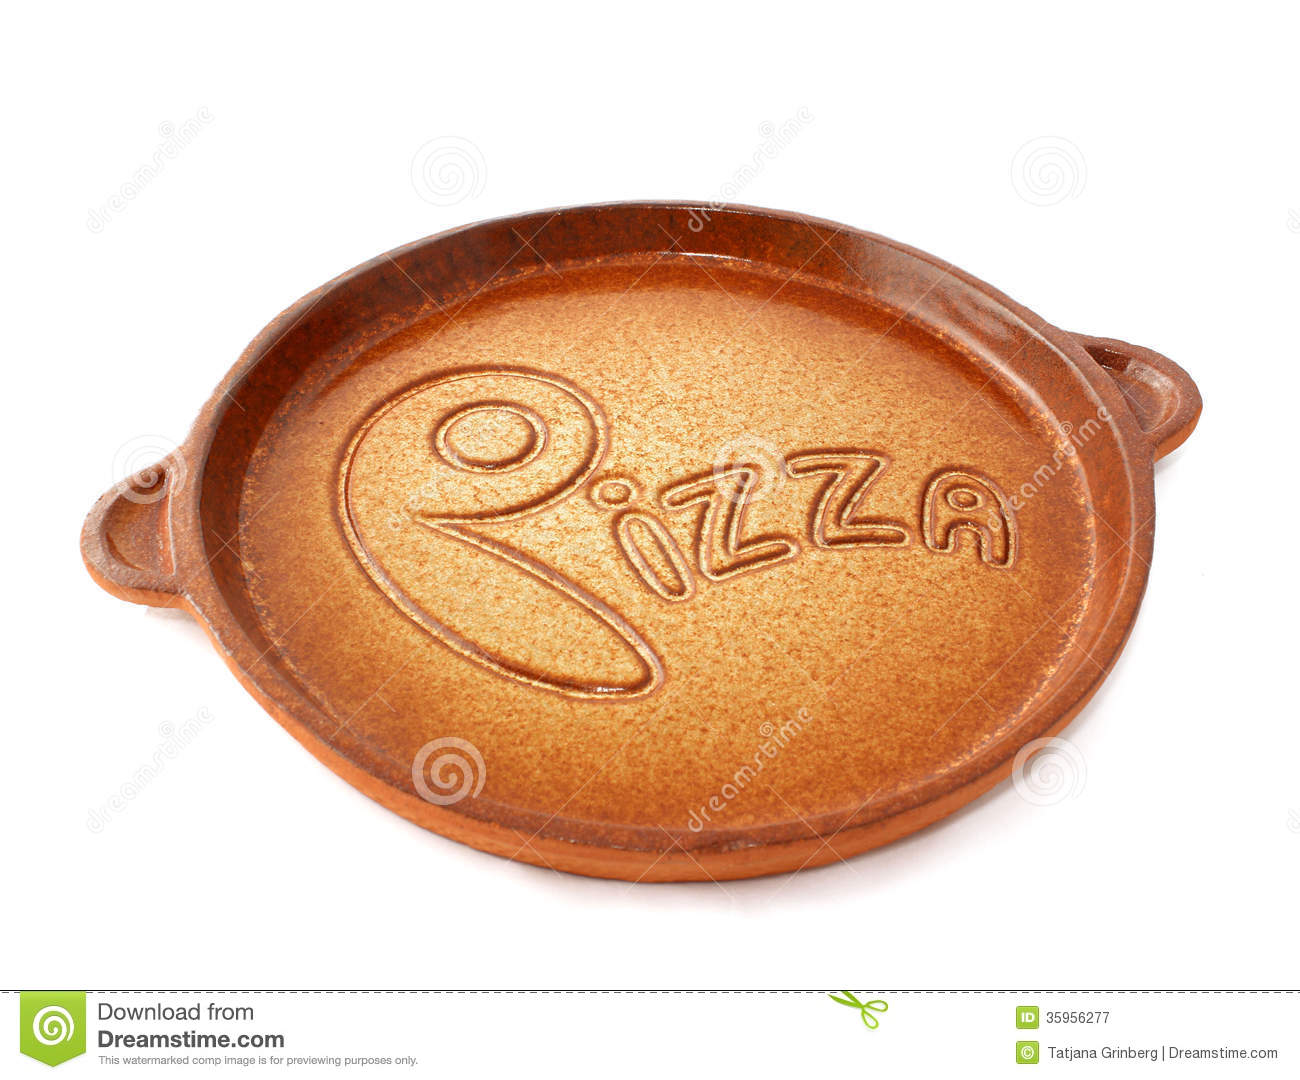 Ceramic plate pizza on white background  sc 1 st  Dreamstime.com & Ceramic Plate Pizza On White Background Stock Image - Image of ...